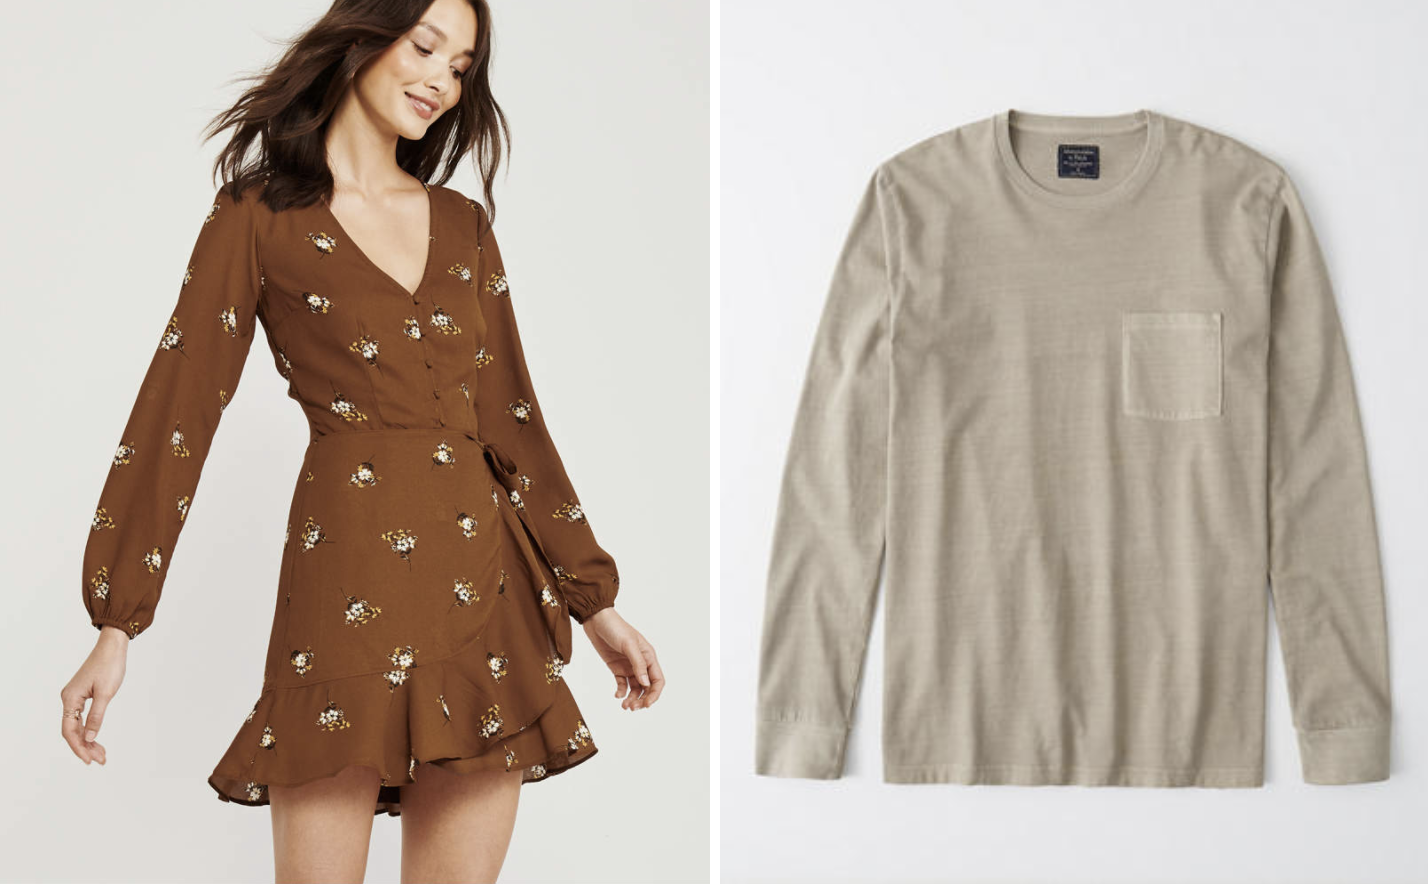 October 2020 deals - Abercrombie & Fitch